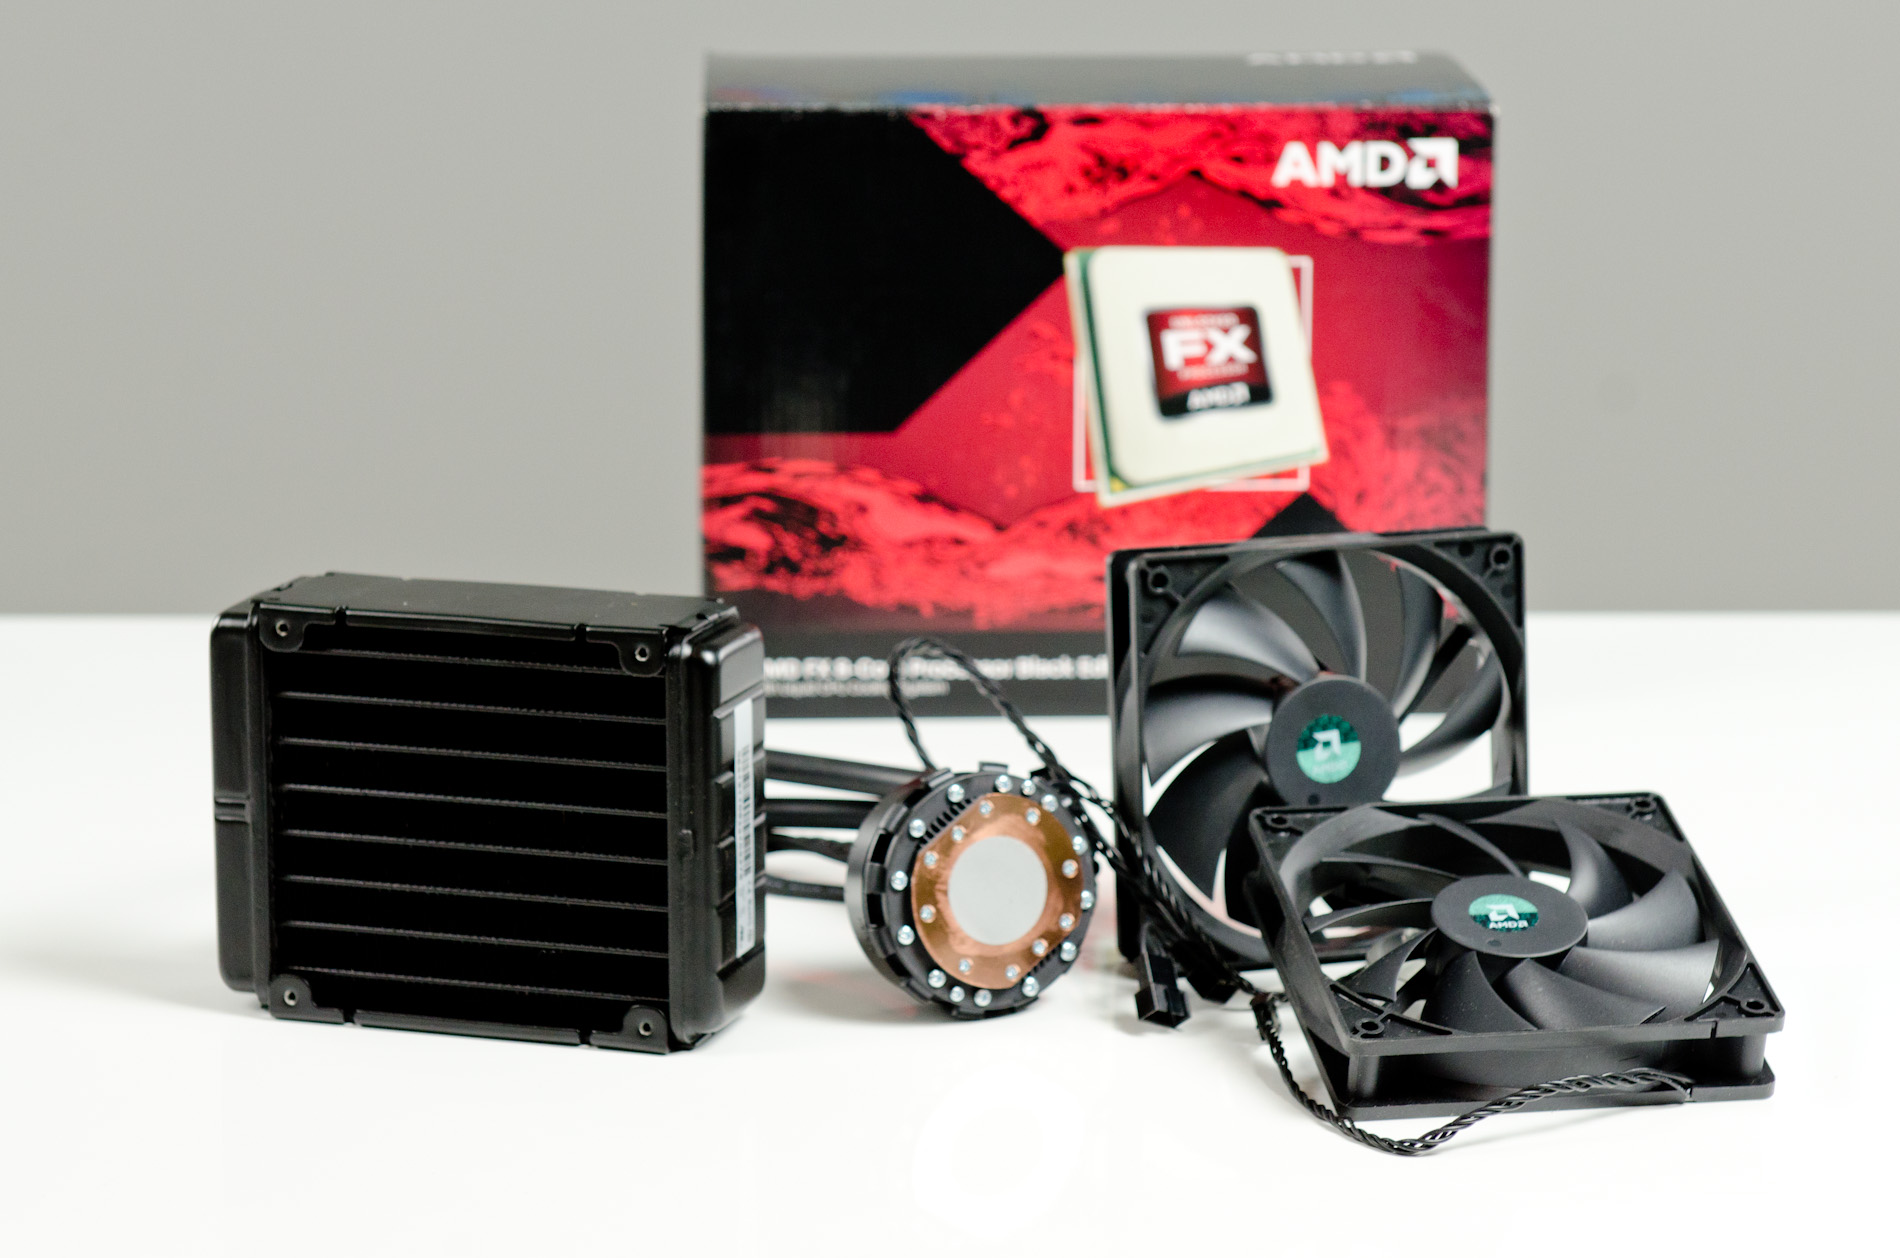 show  the bulldozer review amd fx tested